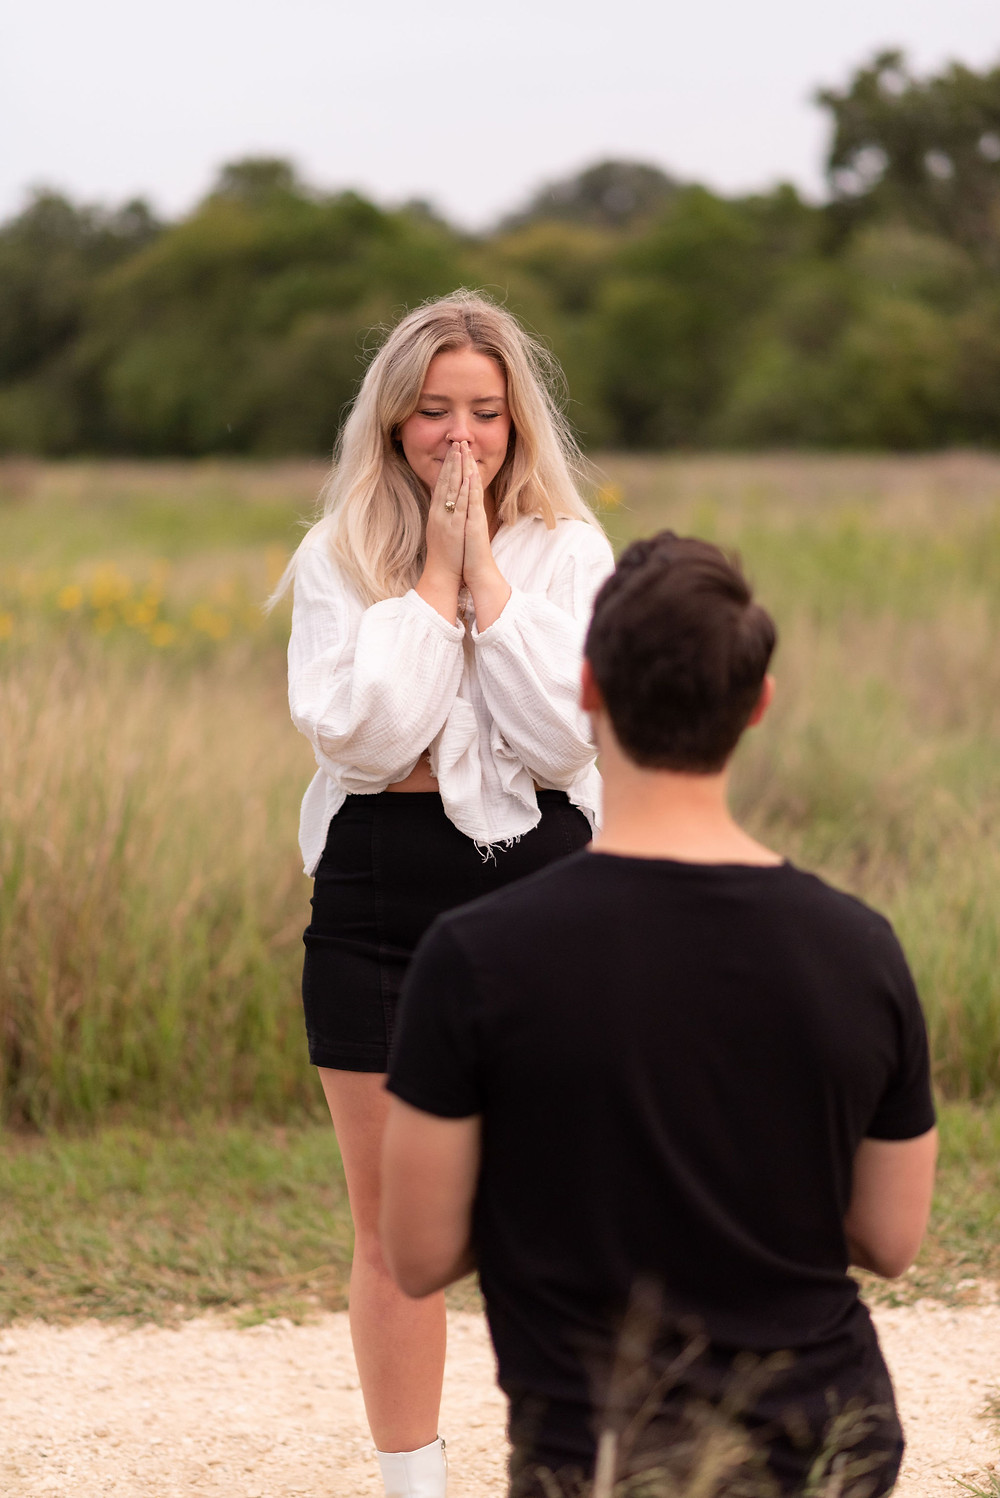 girl's reaction to boyfriend proposing. her hands are in front of her face shielding her mouth